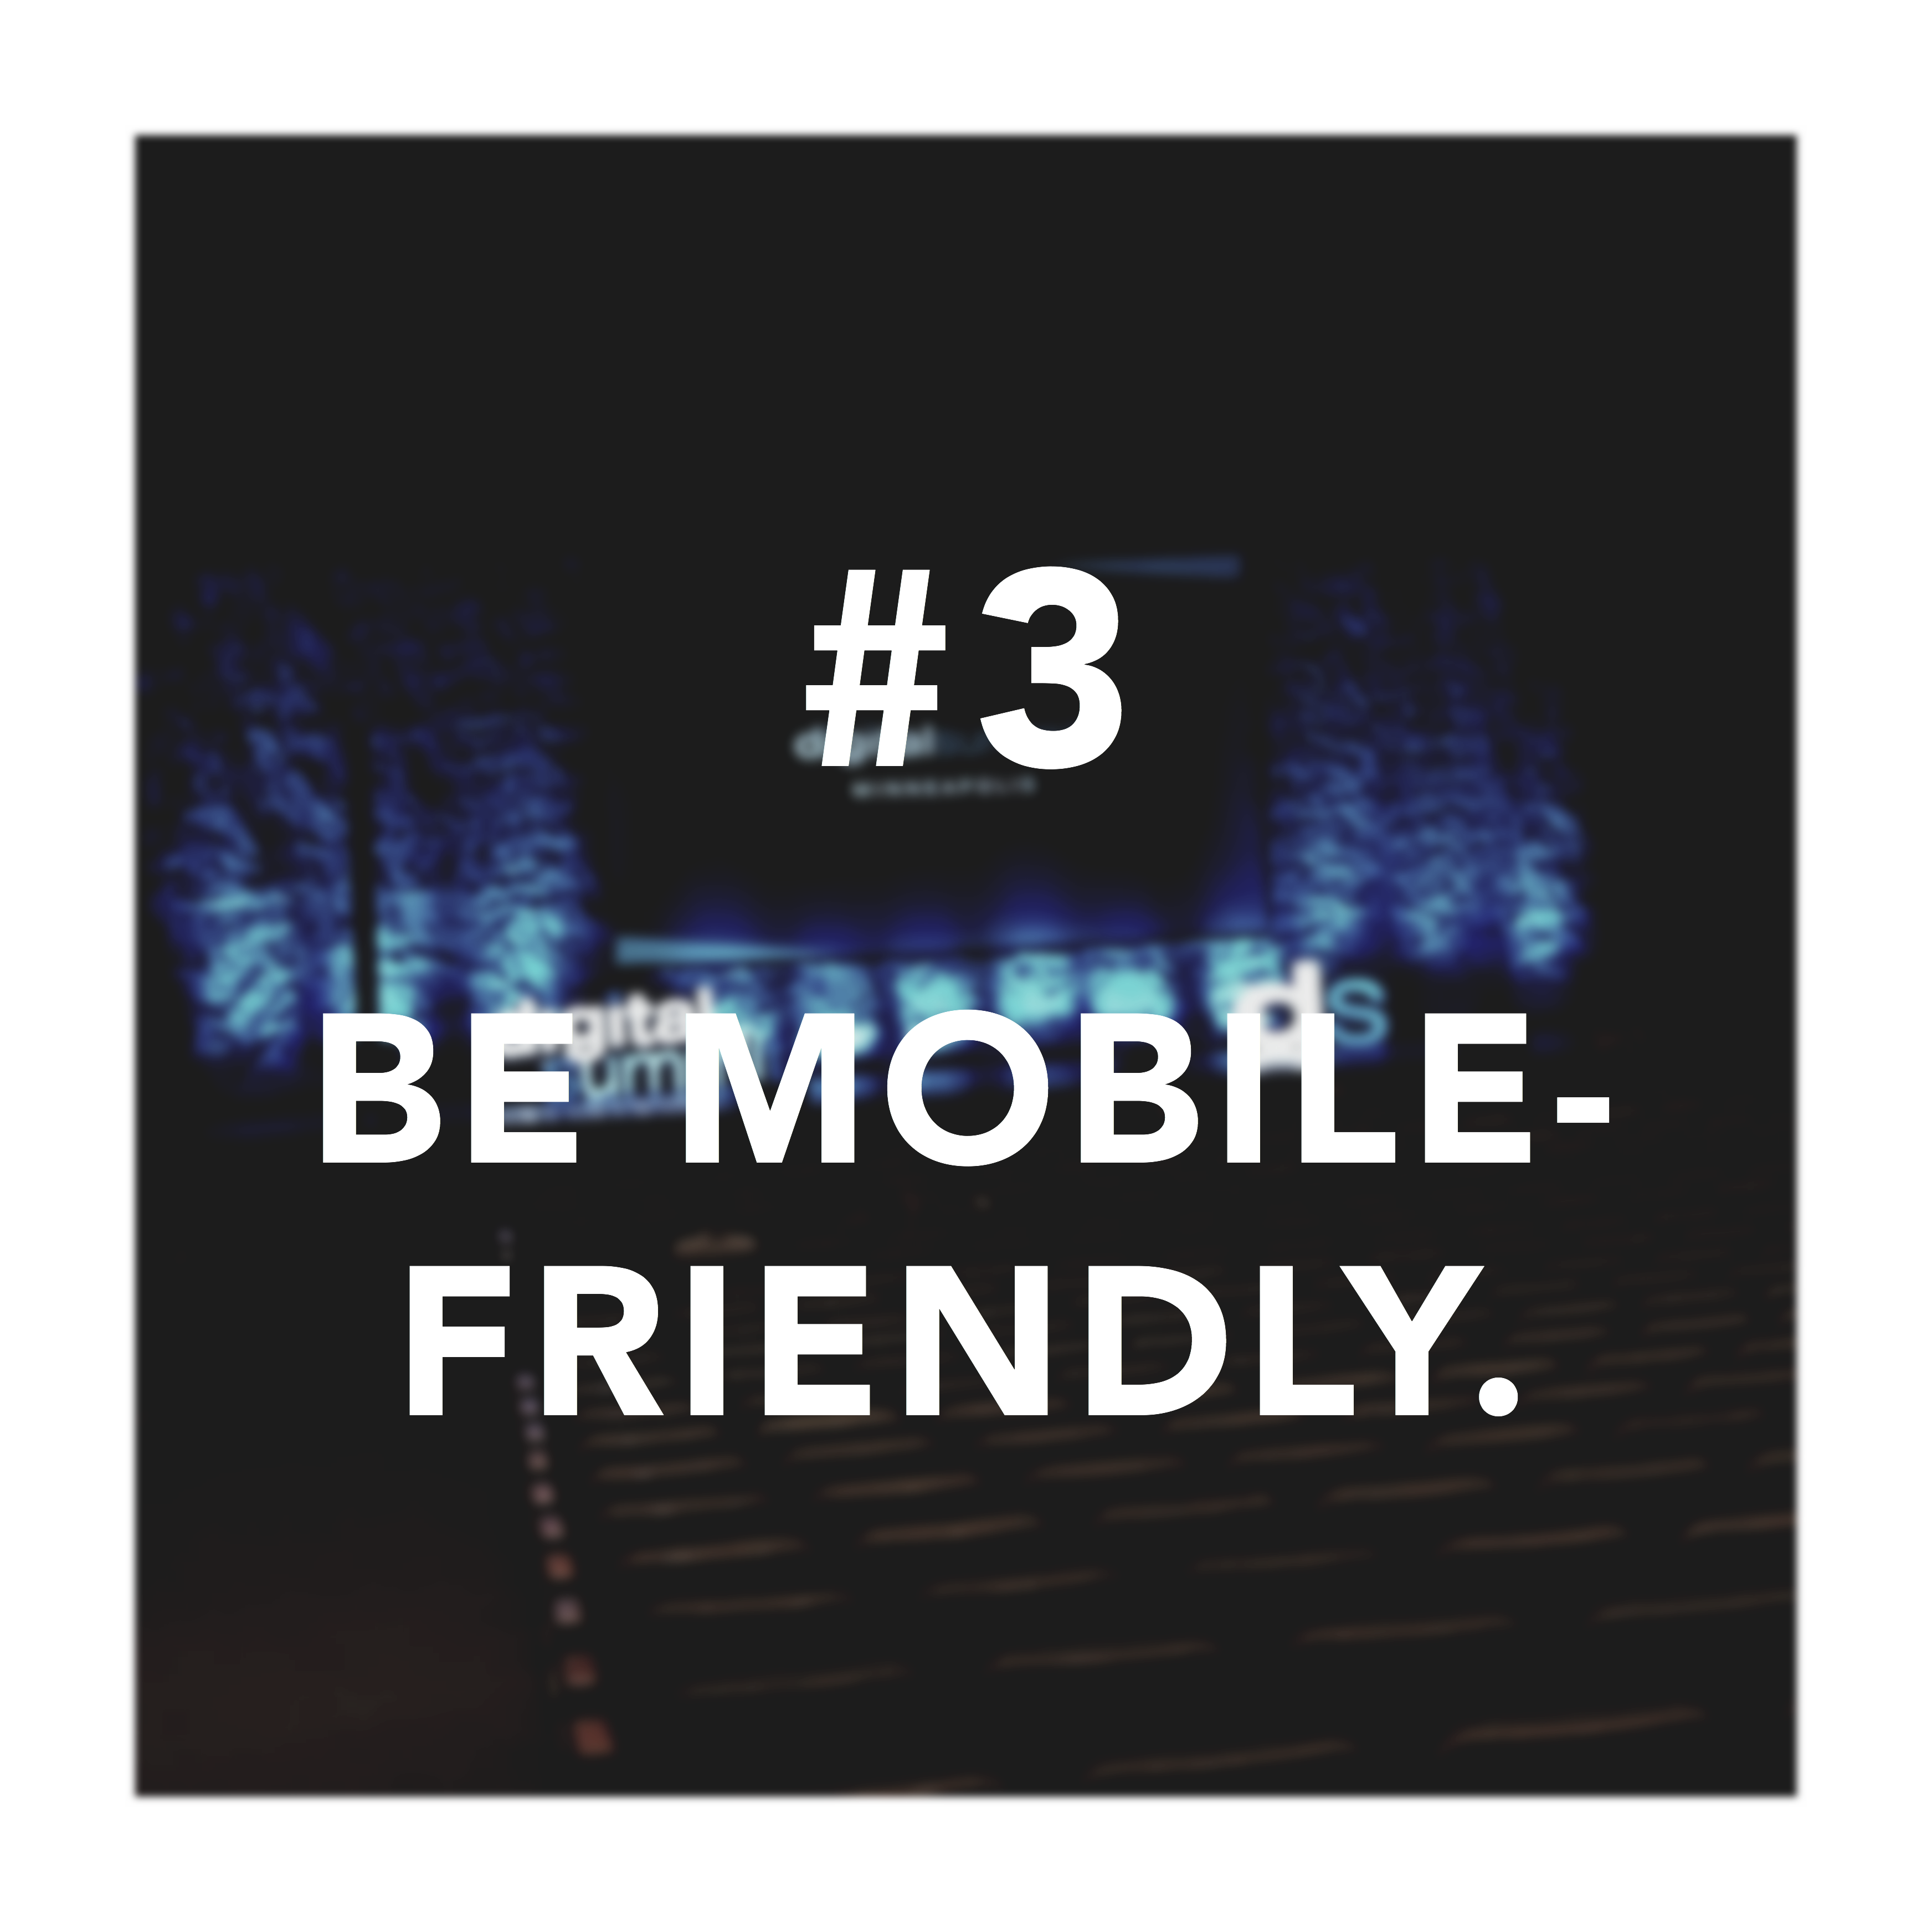 "Third takeaway for digital summit countdown with ""Be Mobile-Friendly"" text"